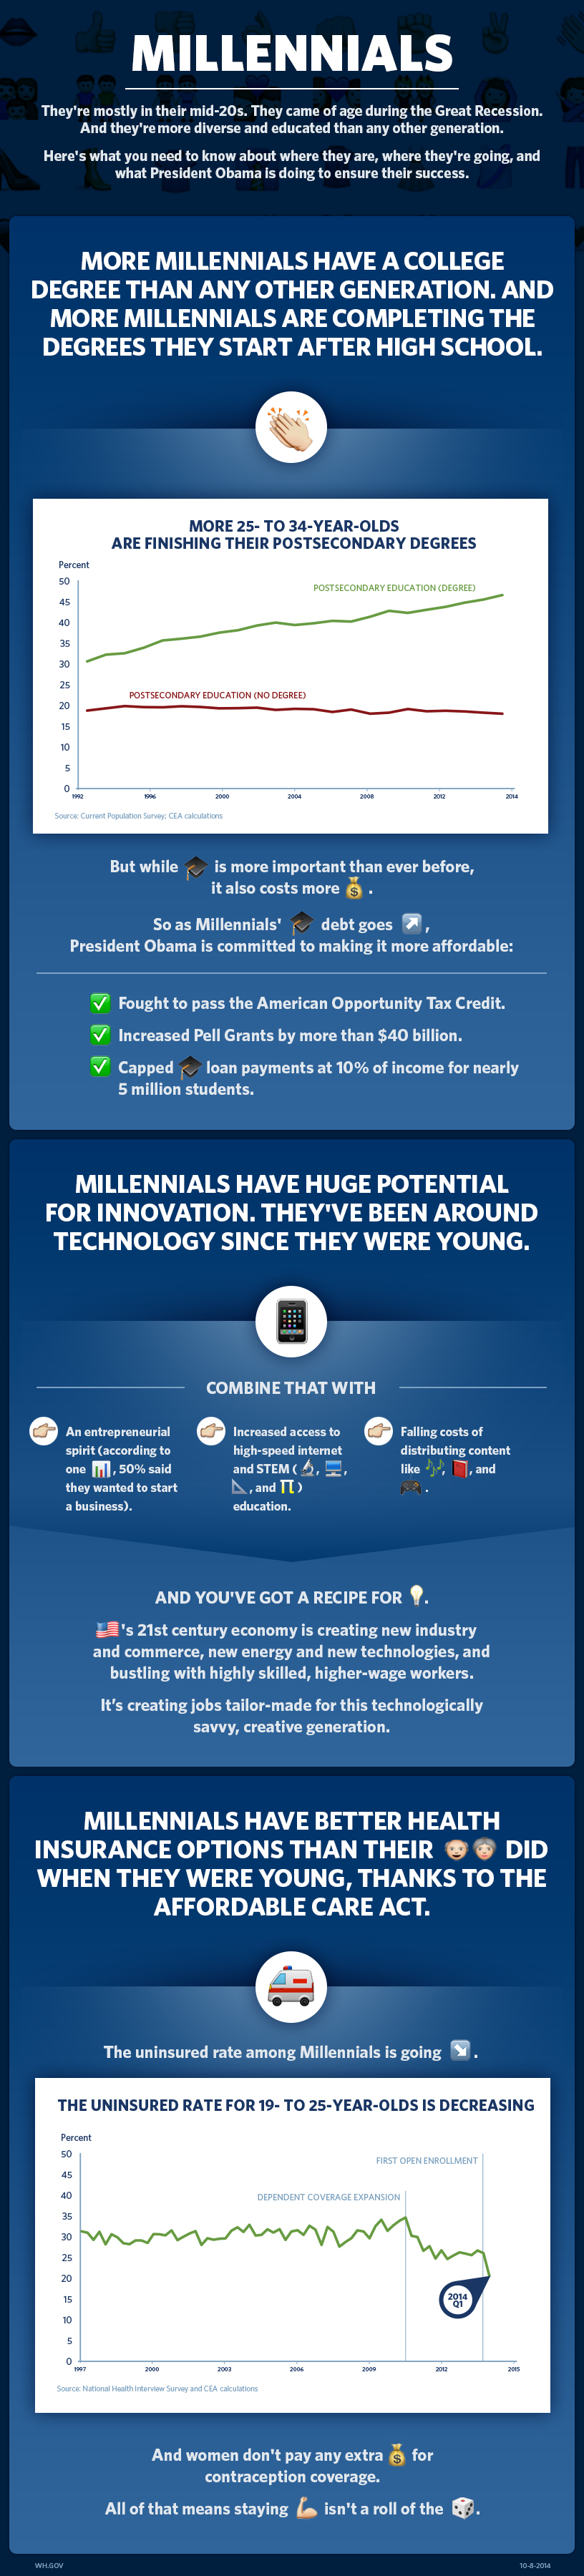 Here's what you need to know about Millennials.